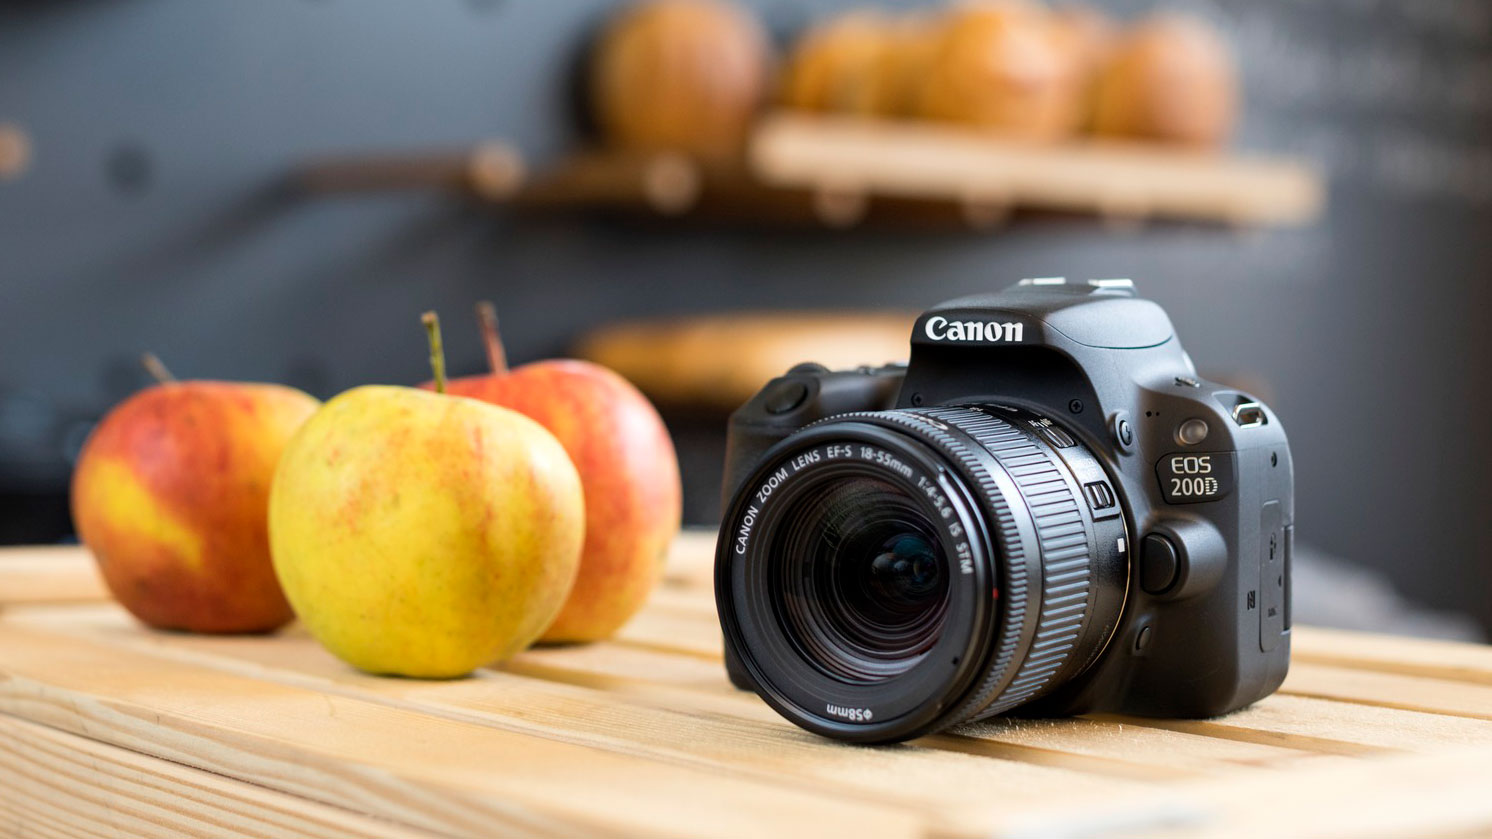 The best Canon EOS Rebel SL2 / EOS 200D deals in 2019